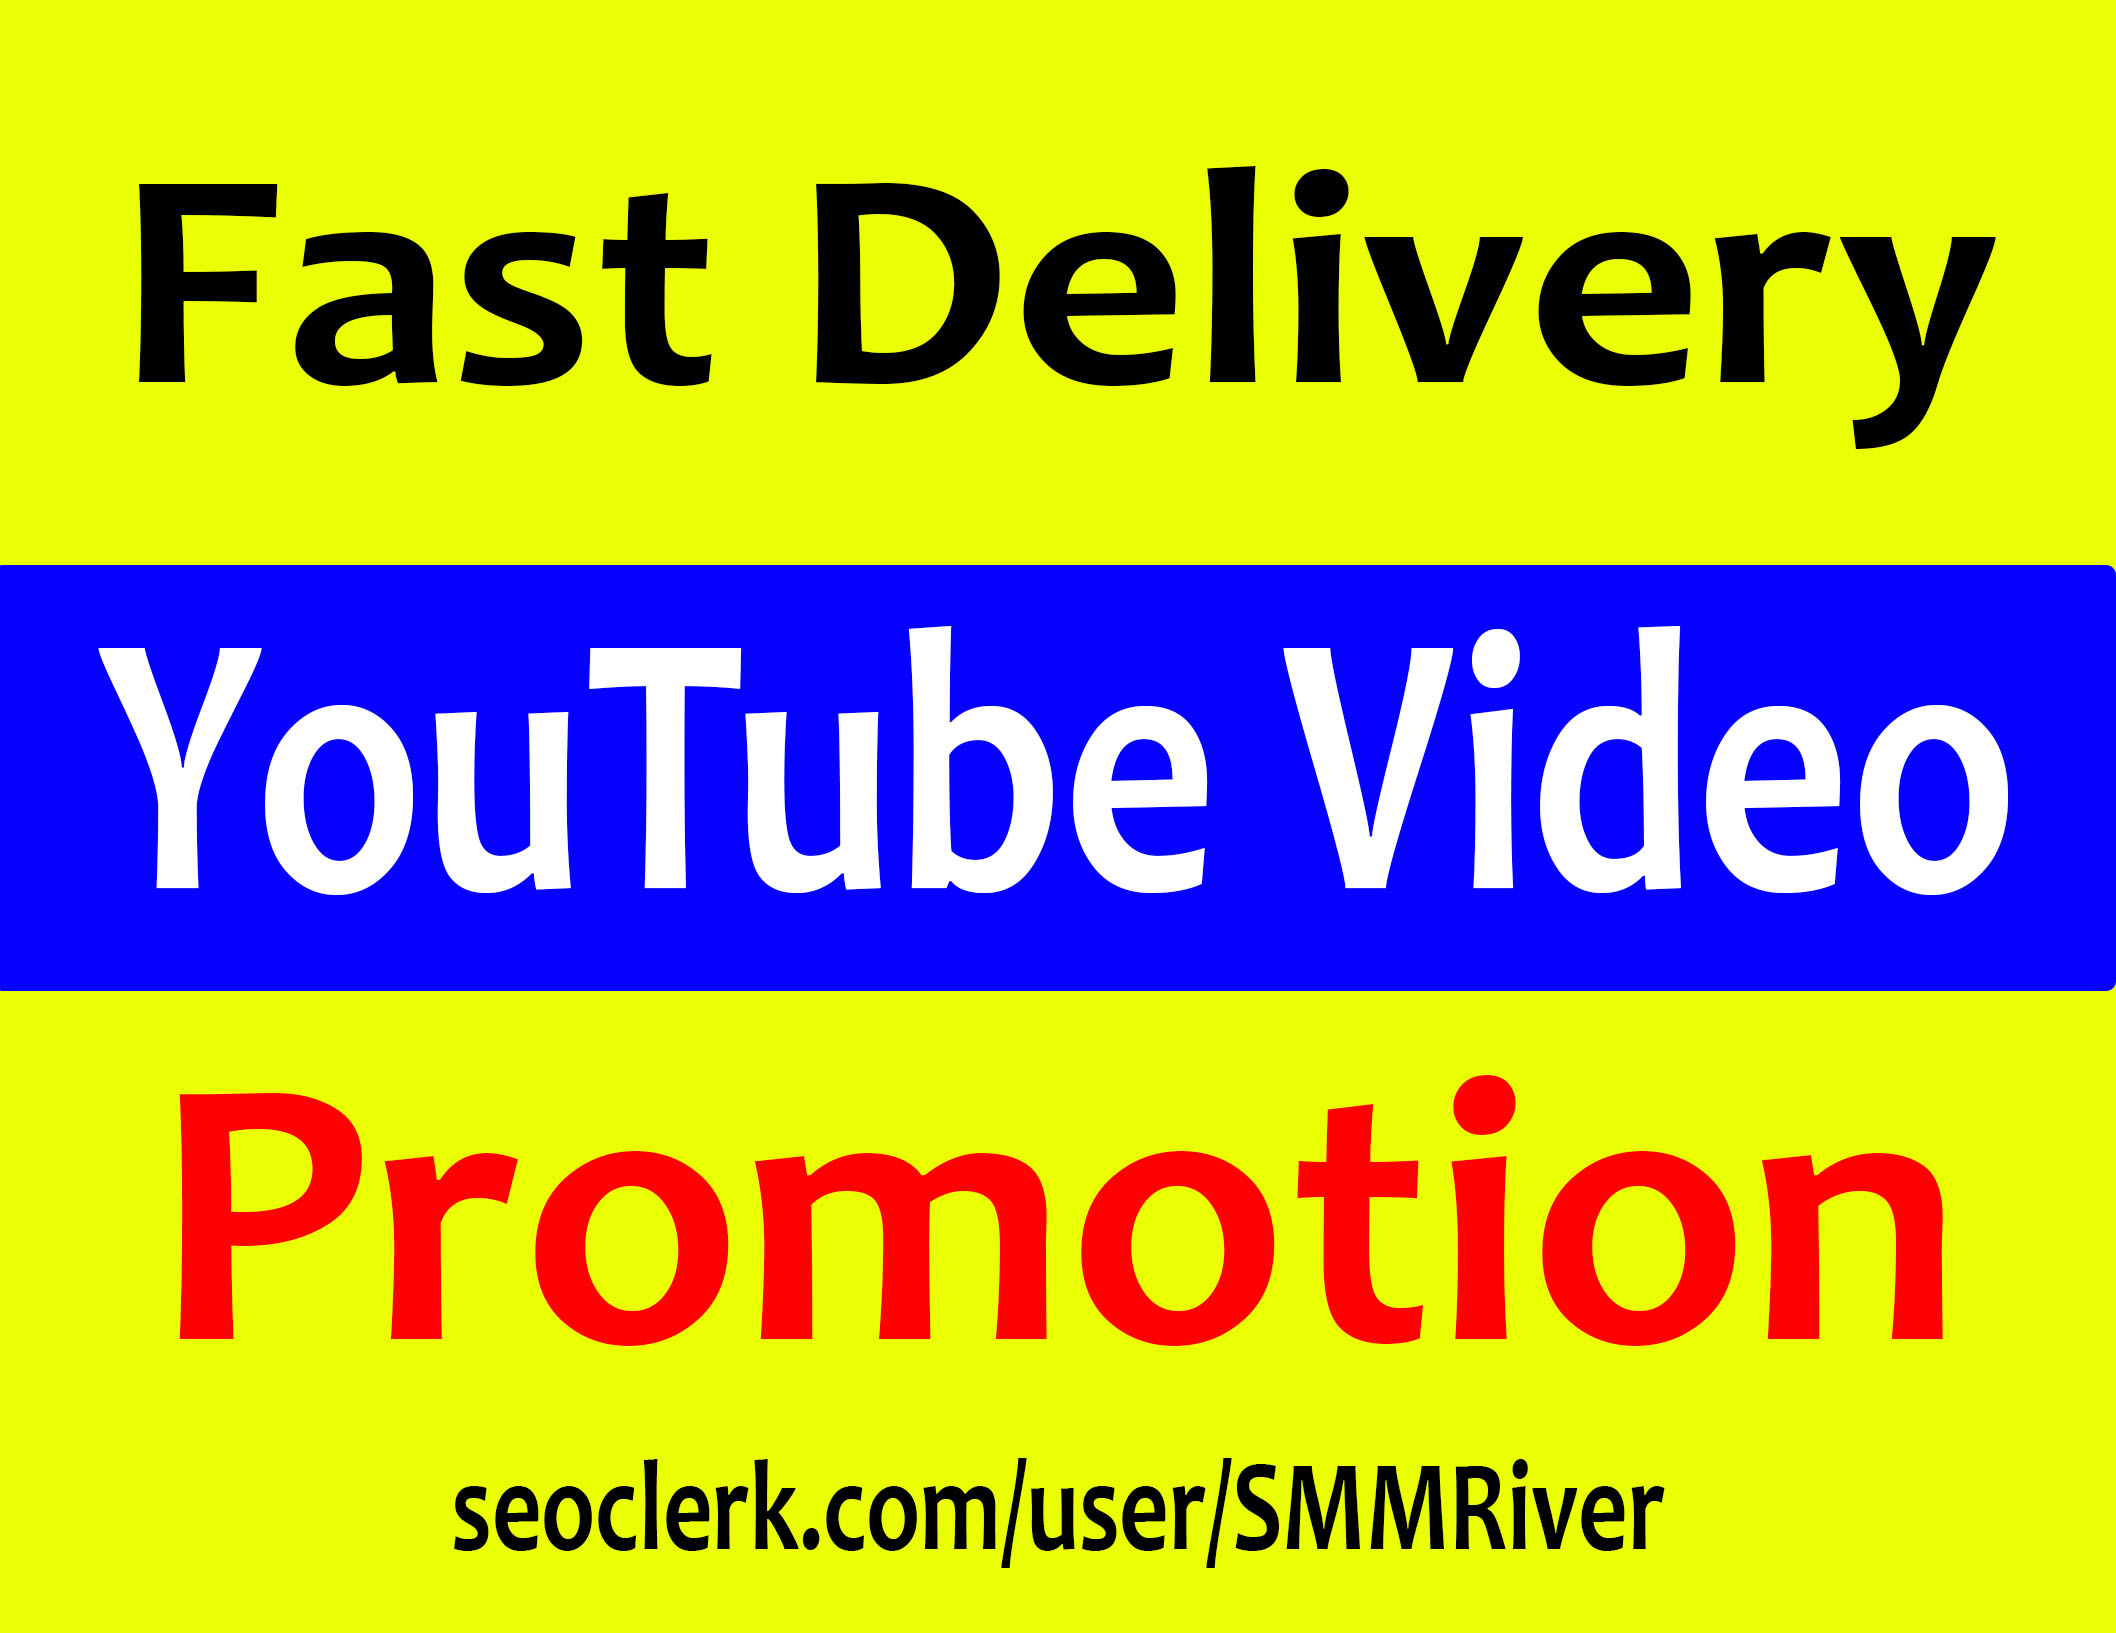 YouTube Video Promotion & Marketing Express Deliv...